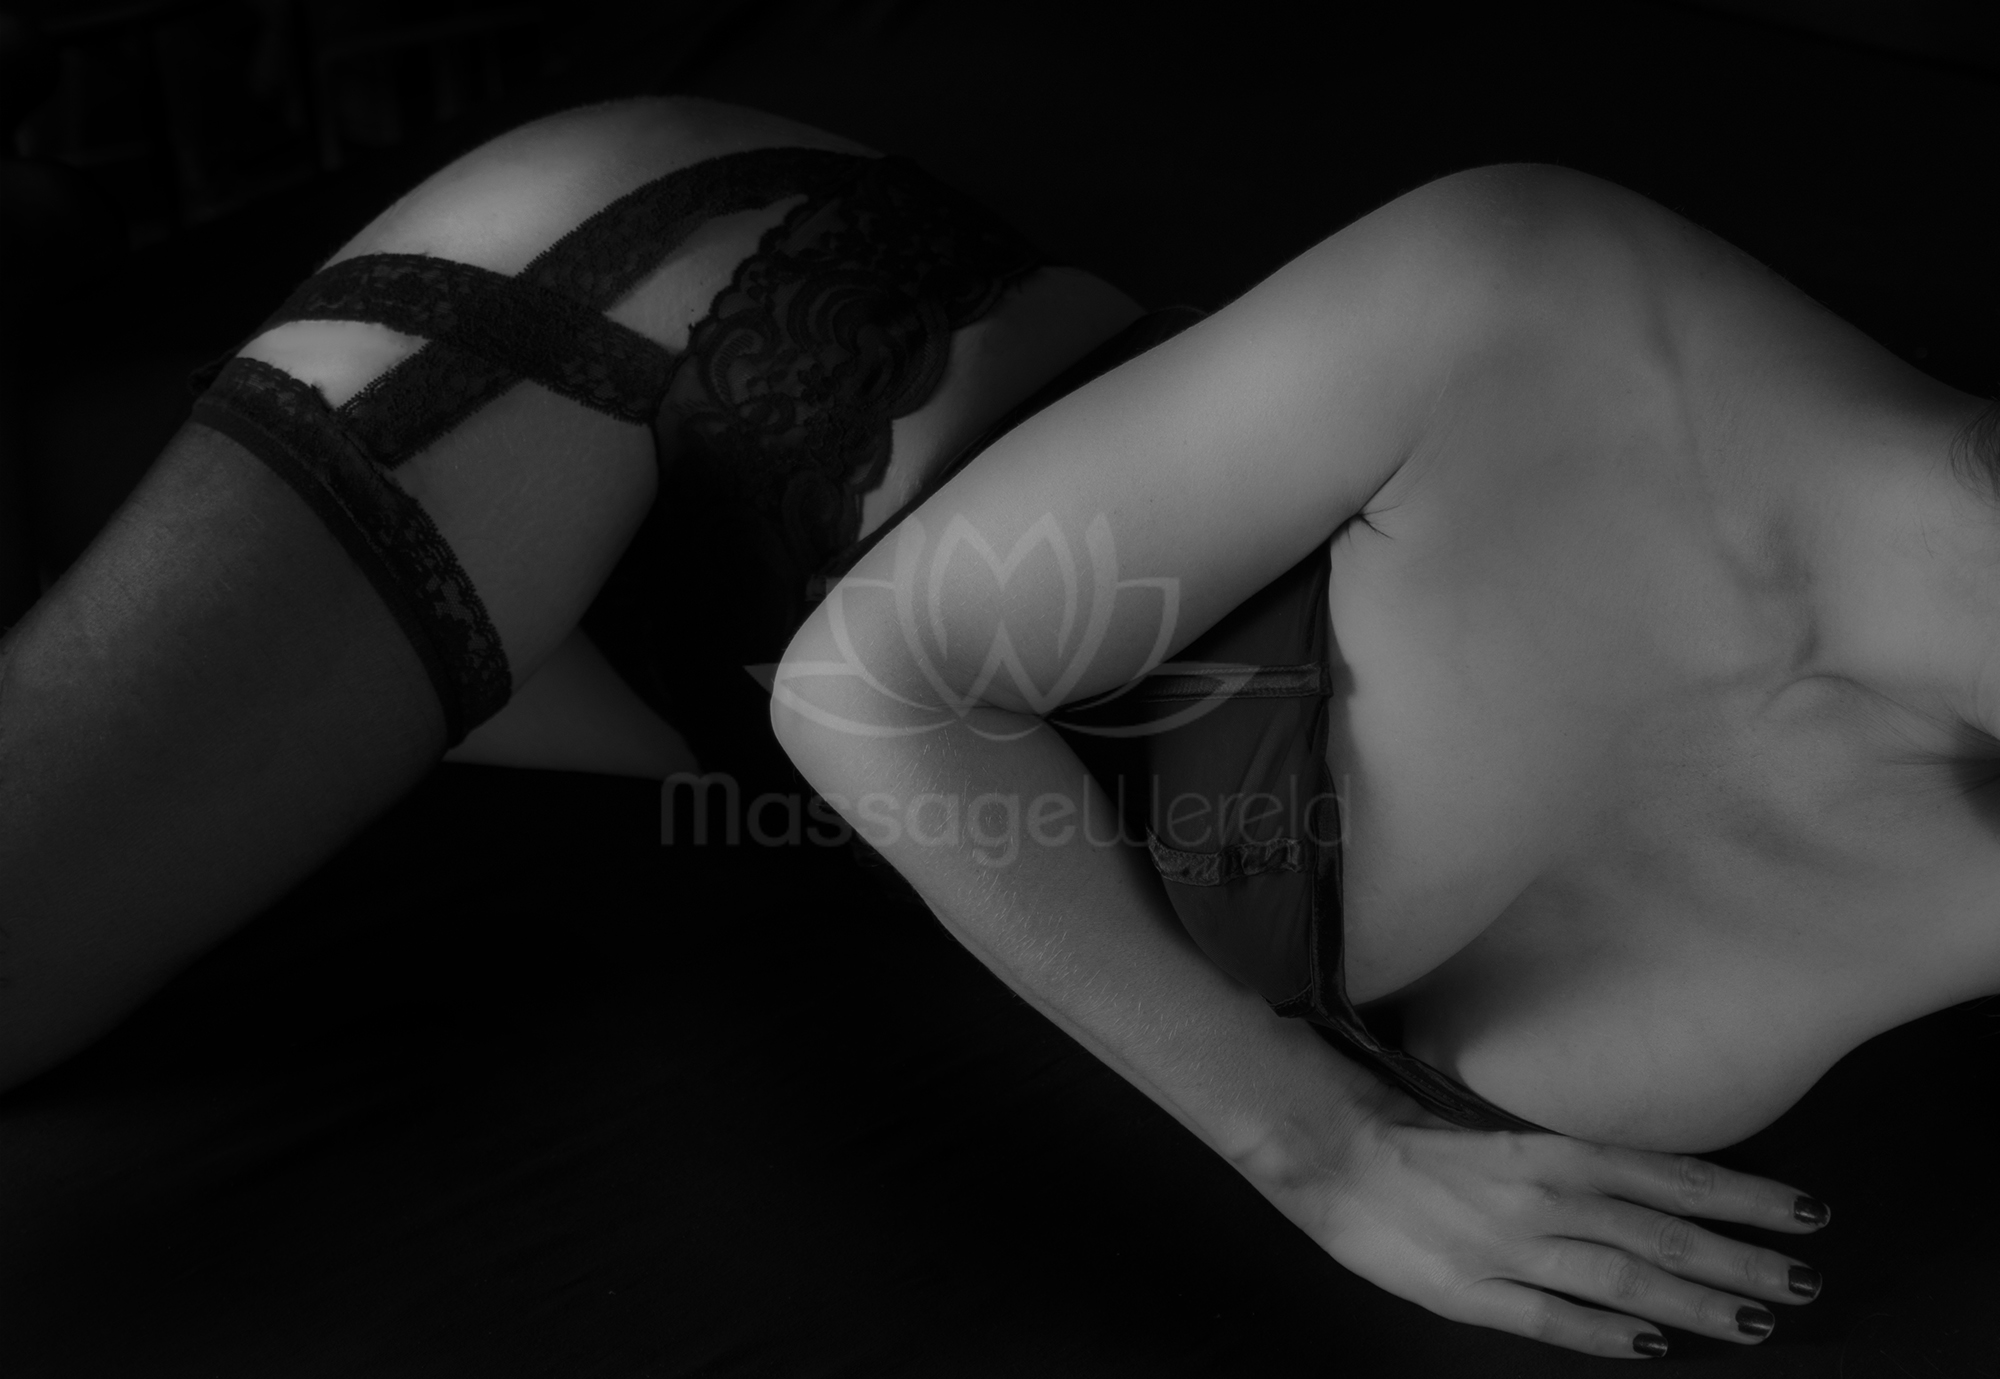 webcem sex erotisch massage antwerpen